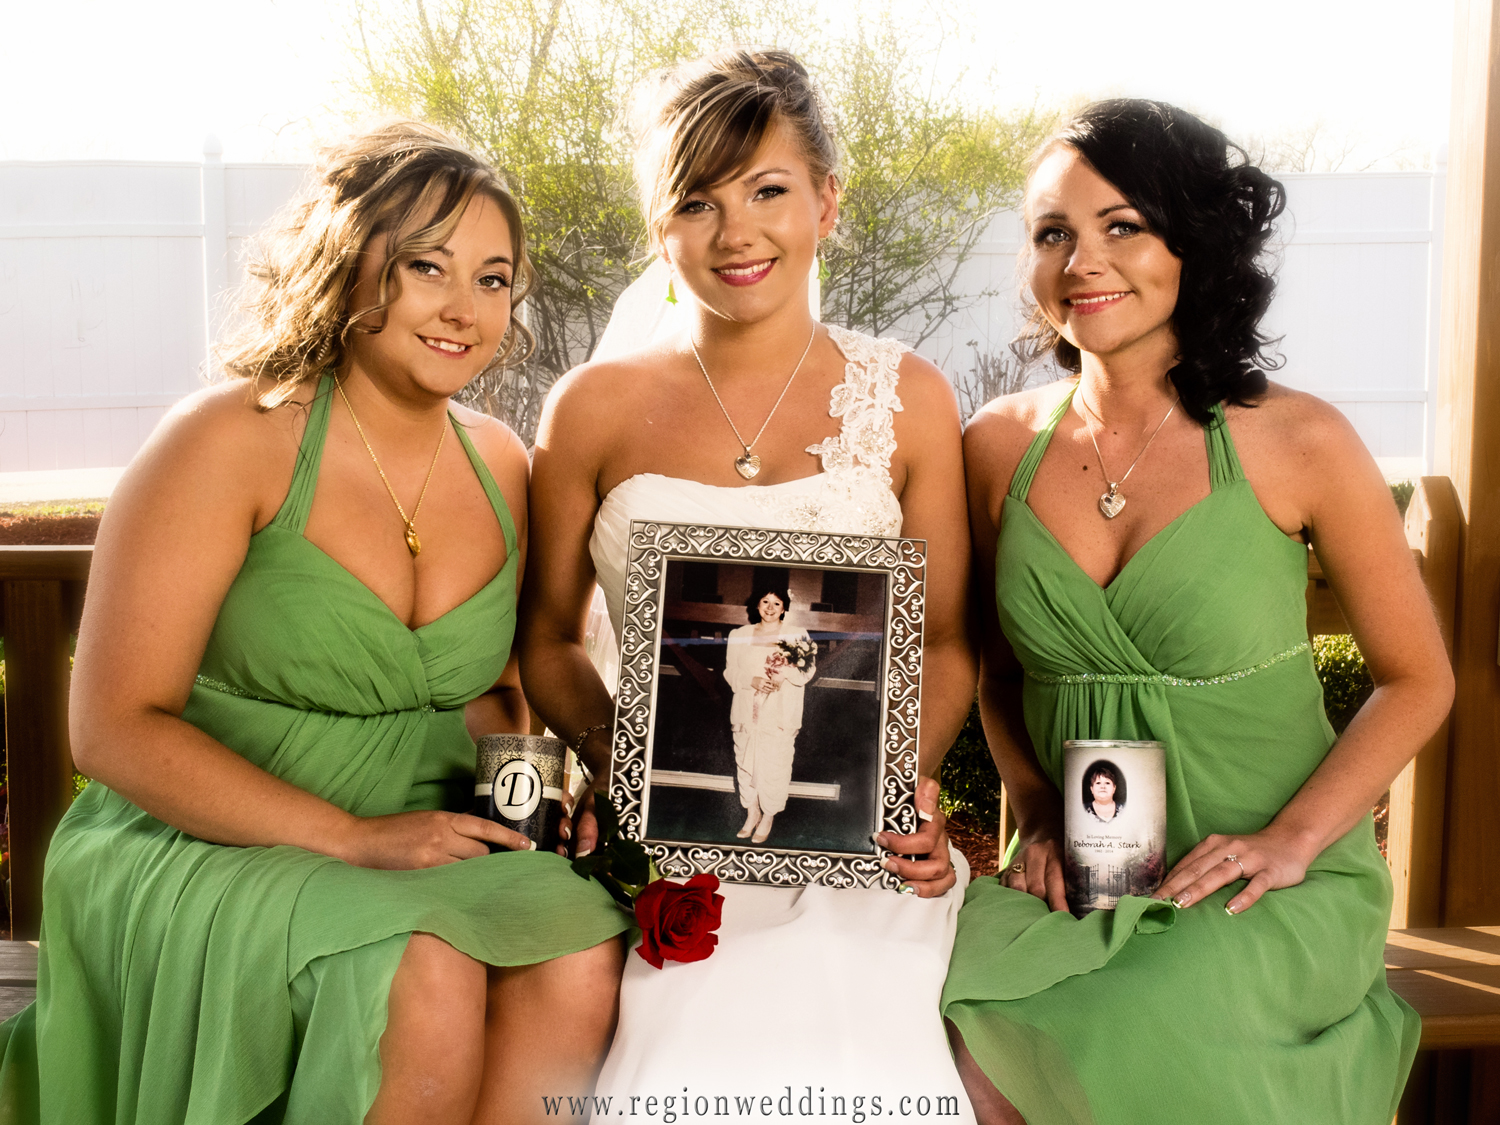 The bride and her sisters pay tribute to their mother.